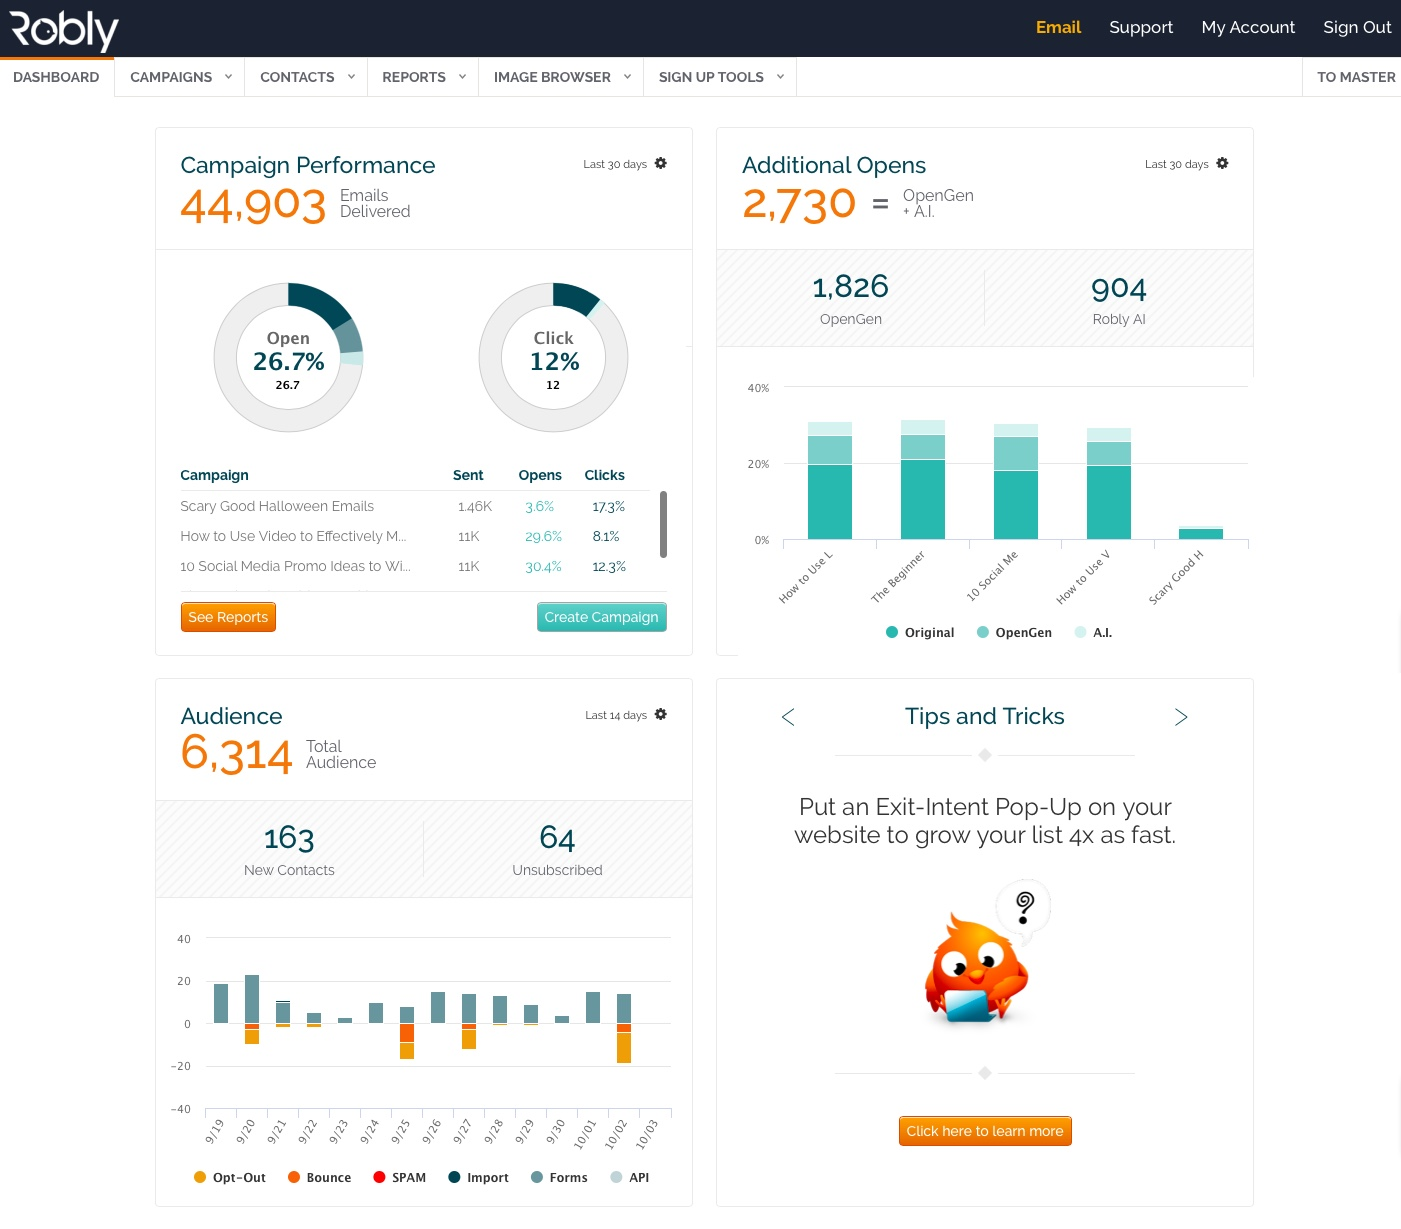 Robly Demo - Dashboard